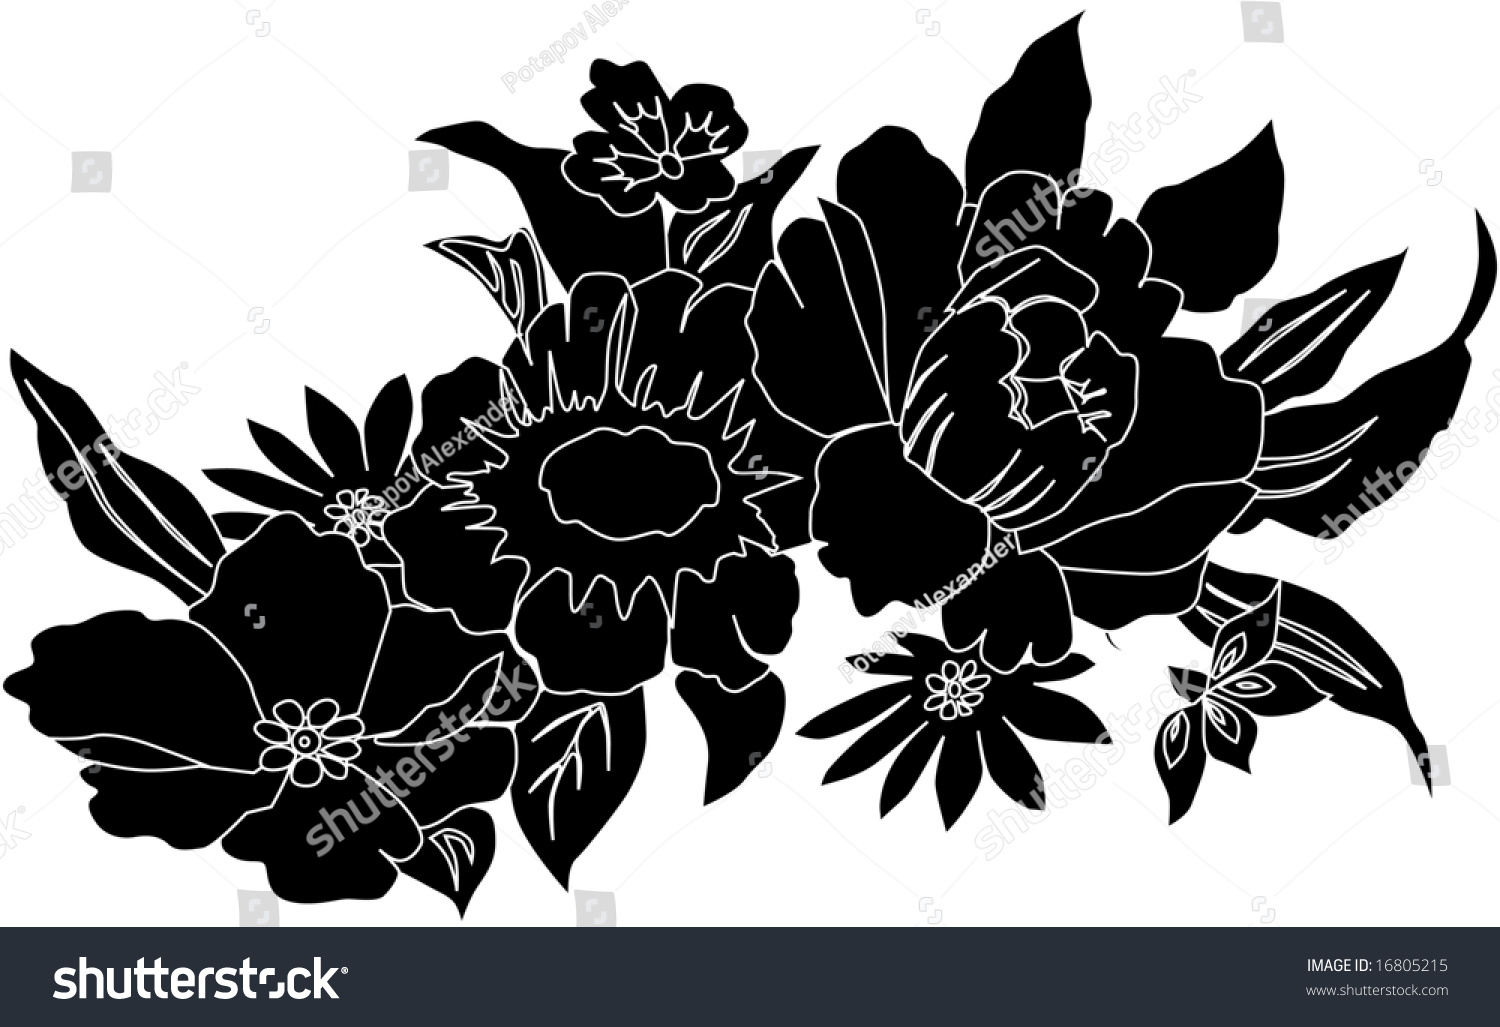 Illustration Black White Flowers Stock Illustration 16805215